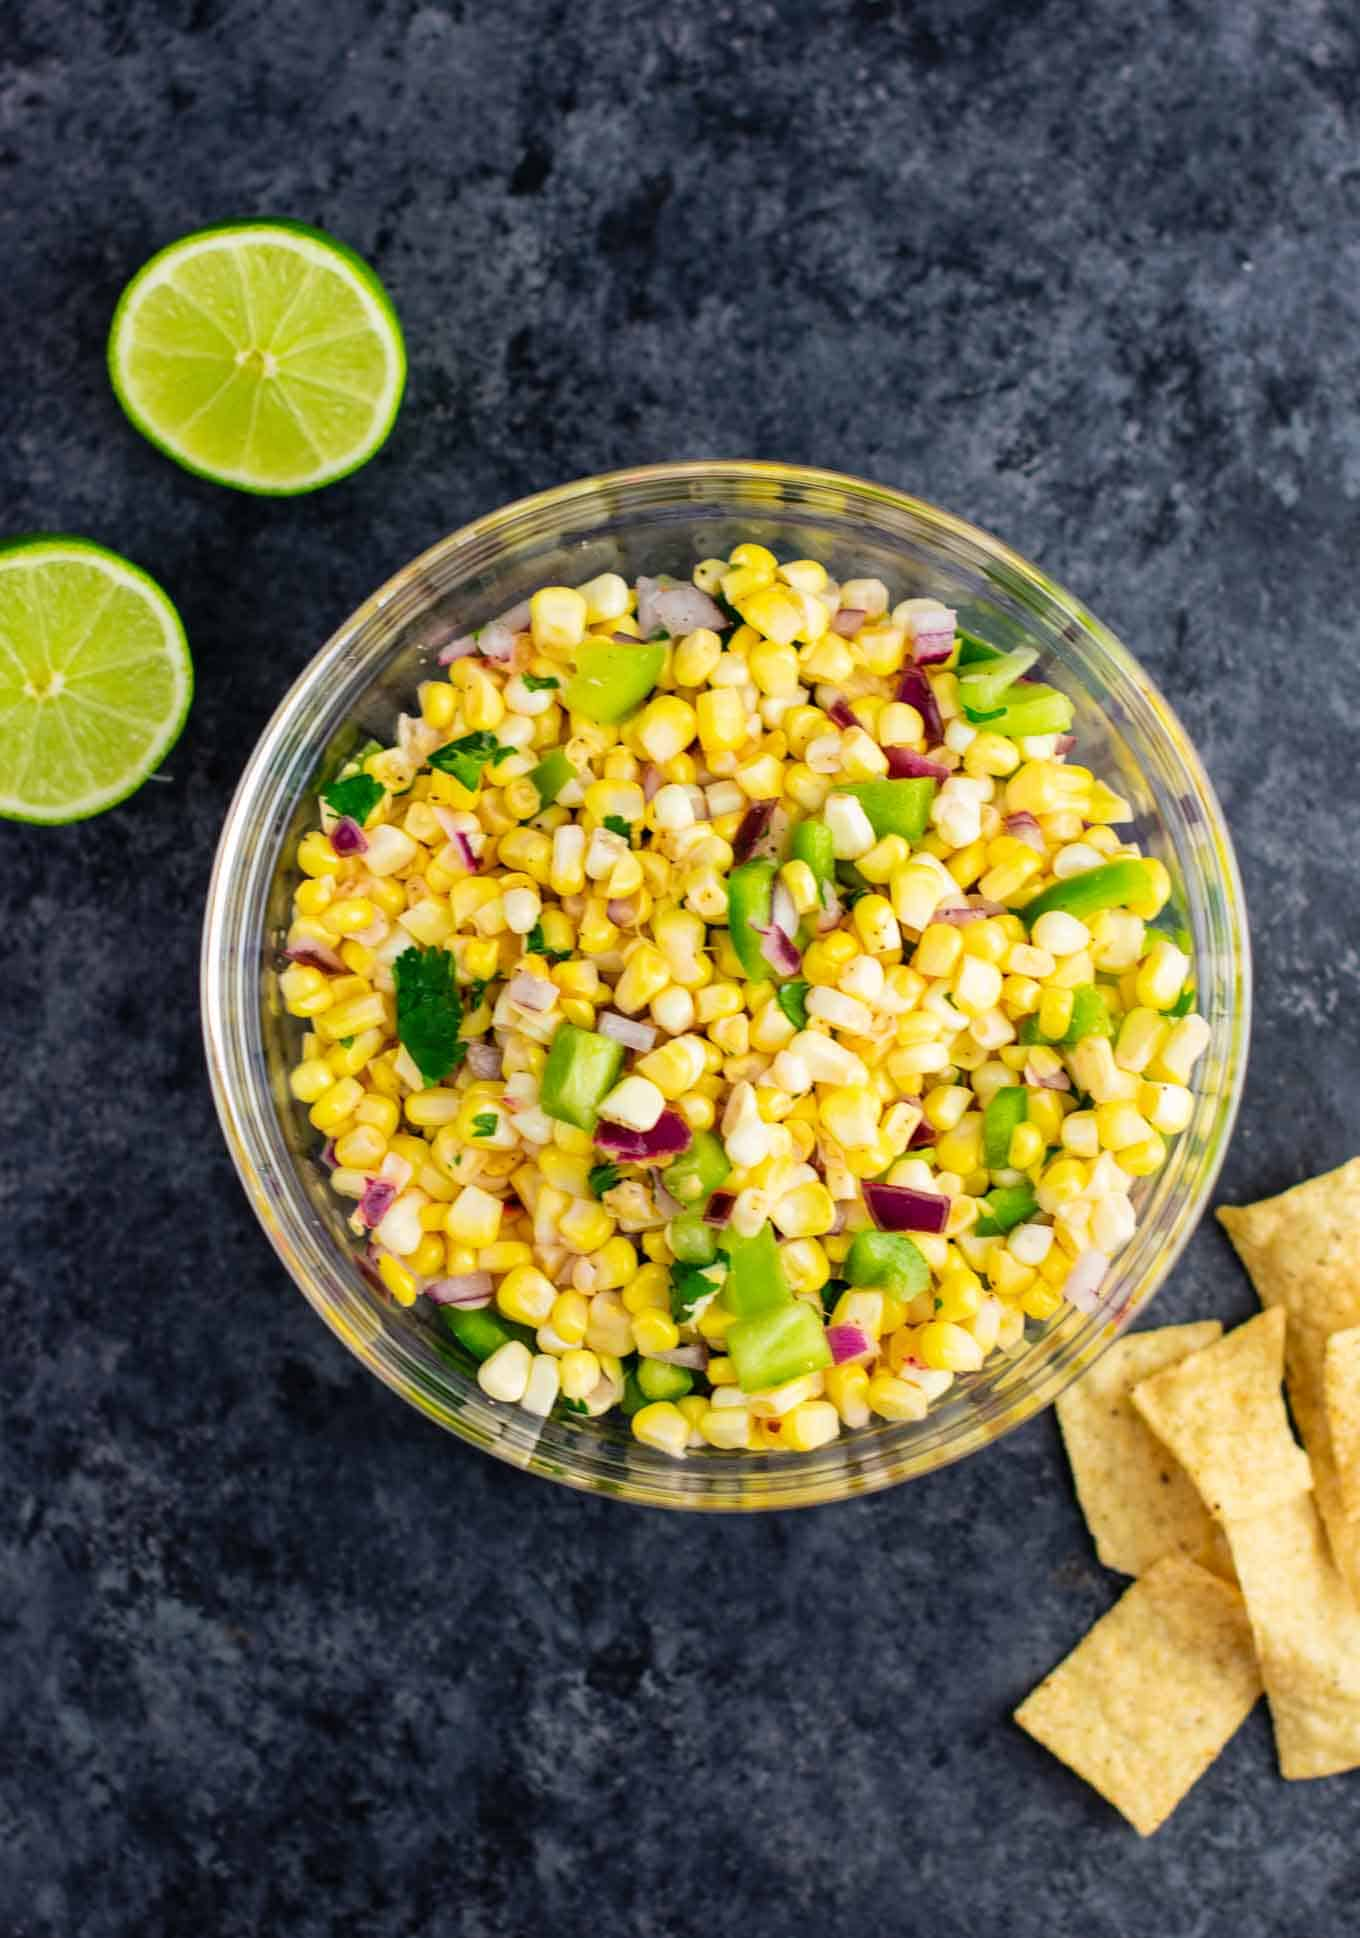 vegetarian mexican recipes:The best easy fresh corn salsa recipe made with just a few ingredients. It tastes better than chipotle and is ready in minutes! Make your own burrito bowls at home with this awesome corn salsa. #chipotlecornsalsa #cornsalsa #chipotle #burritobowl #appetizer #vegan #corn #appetizer